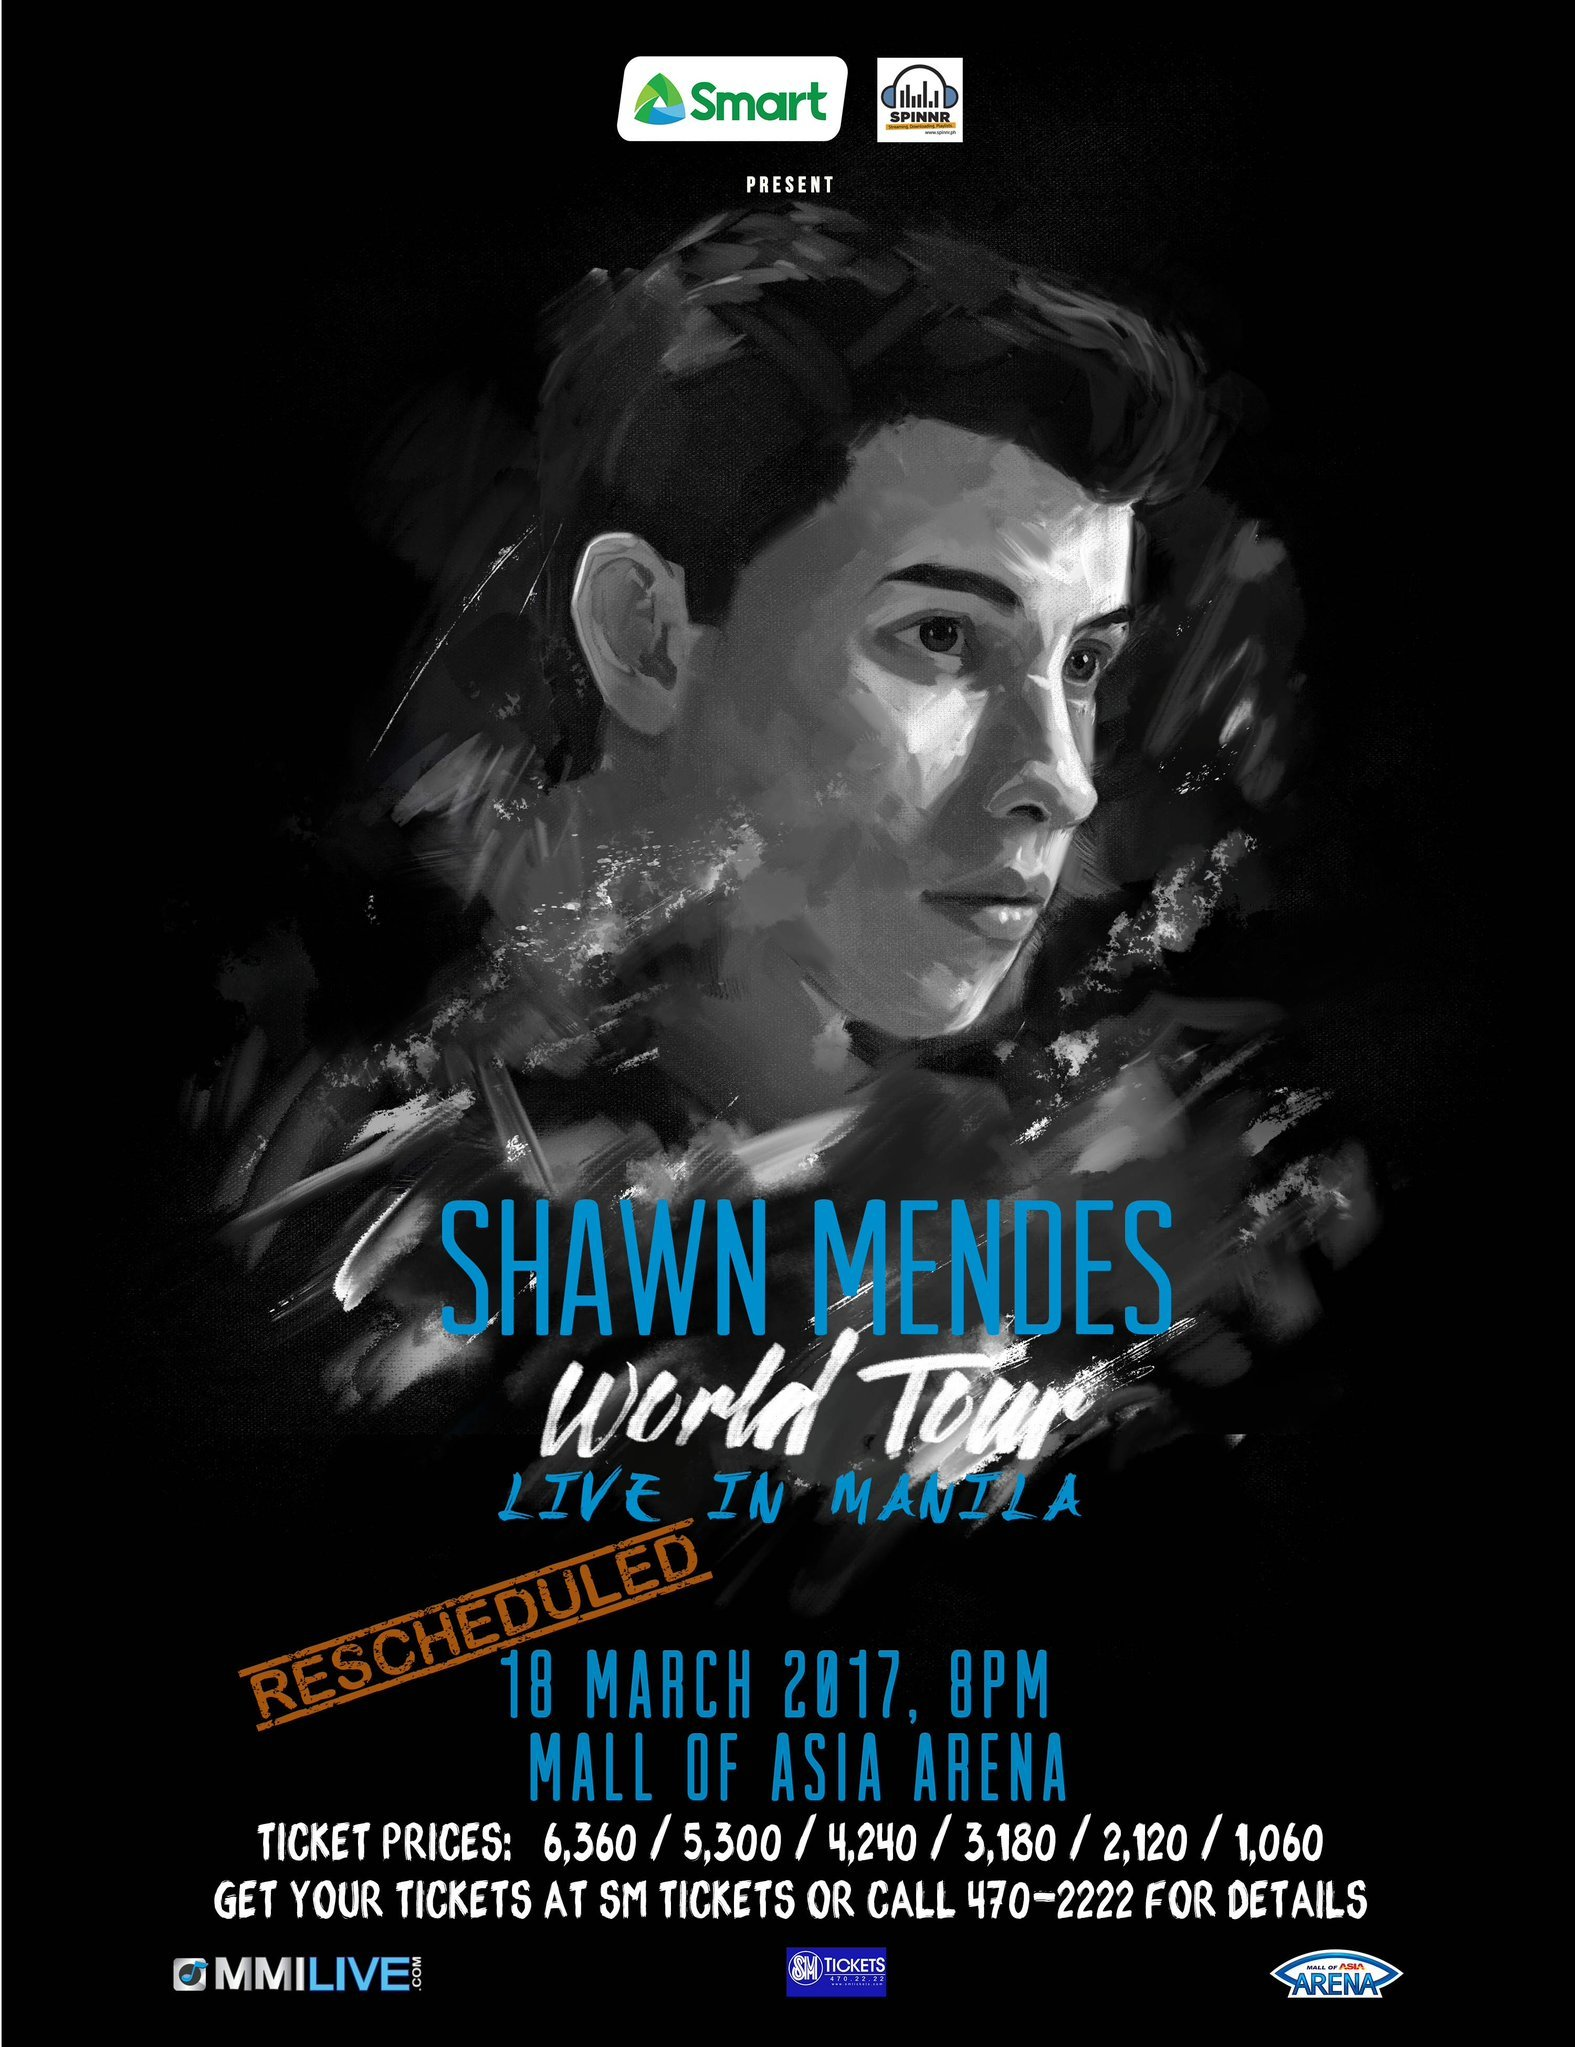 shawn-mendes-world-tour-live-in-manila-002